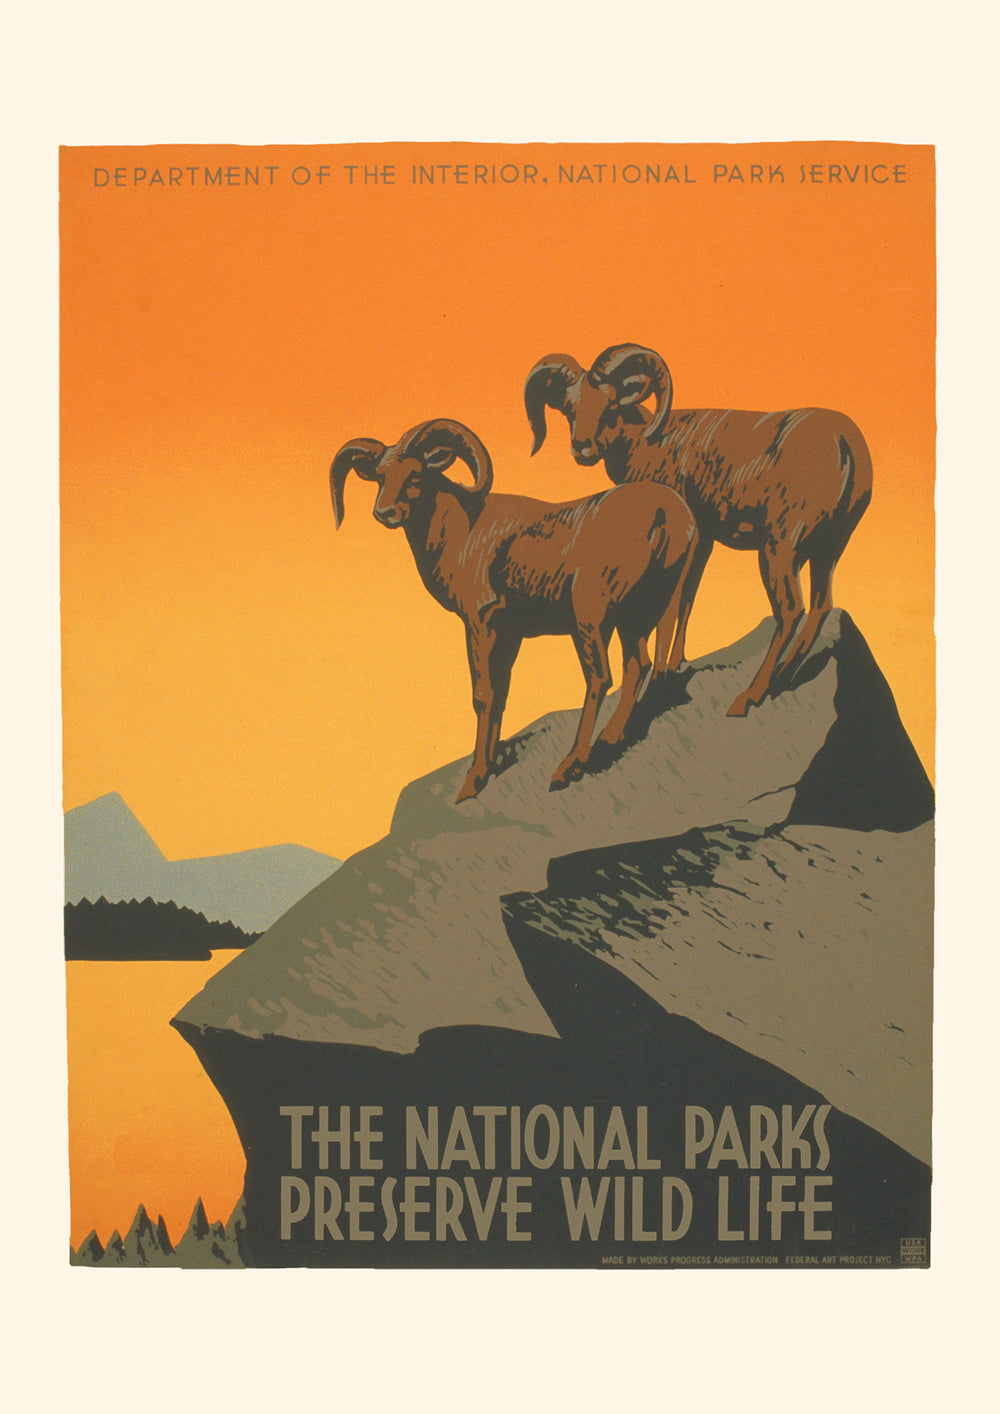 The National Parks preserve wild life – American poster